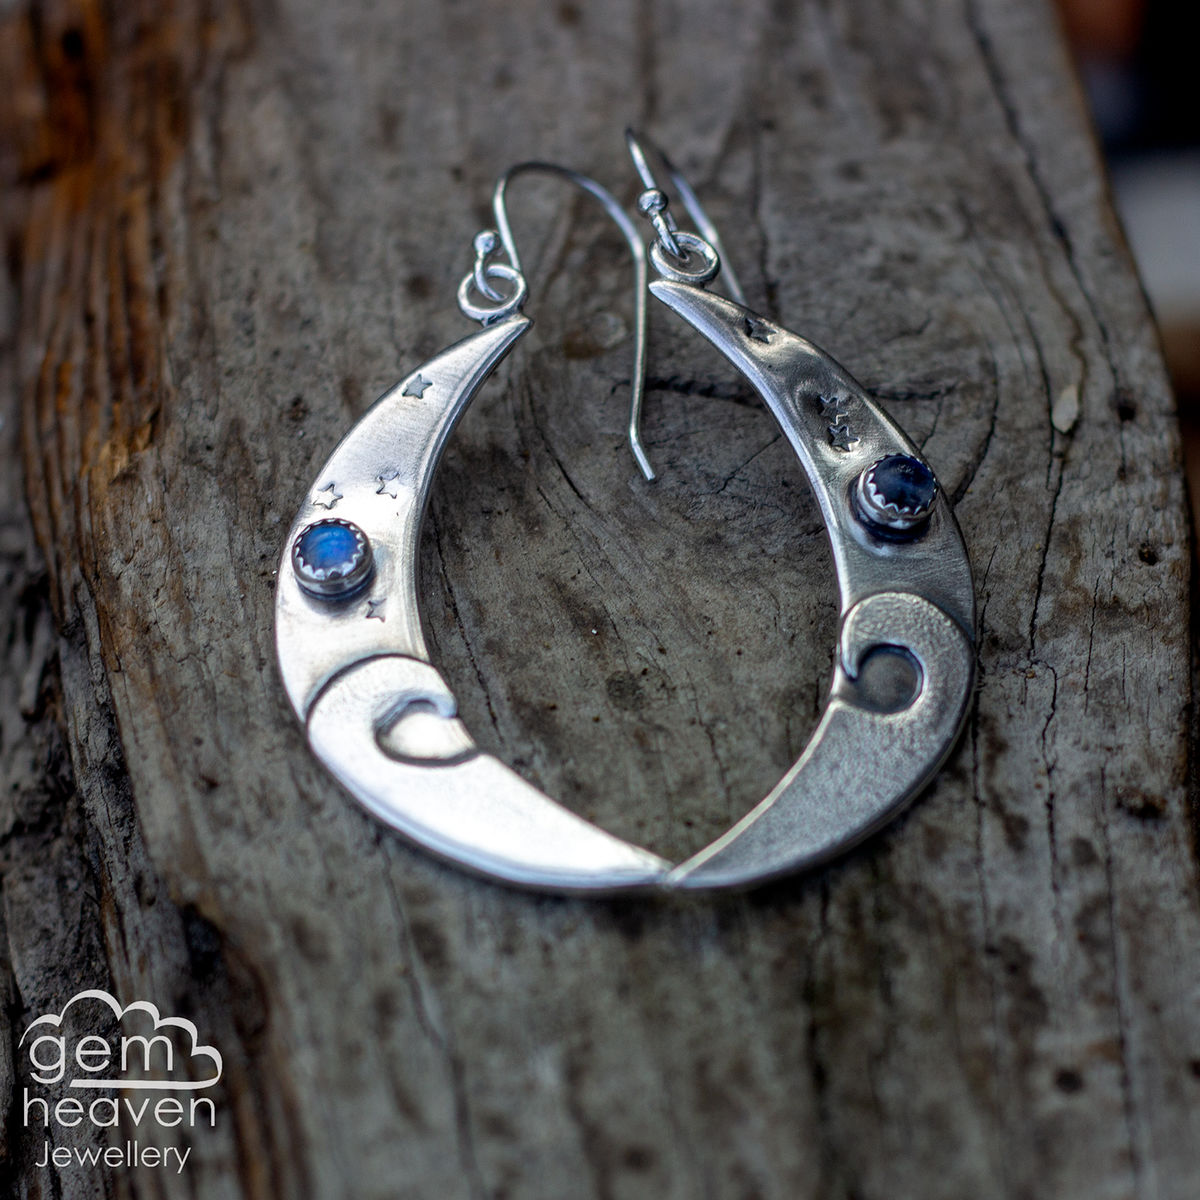 Tidal moon earrings - product images  of